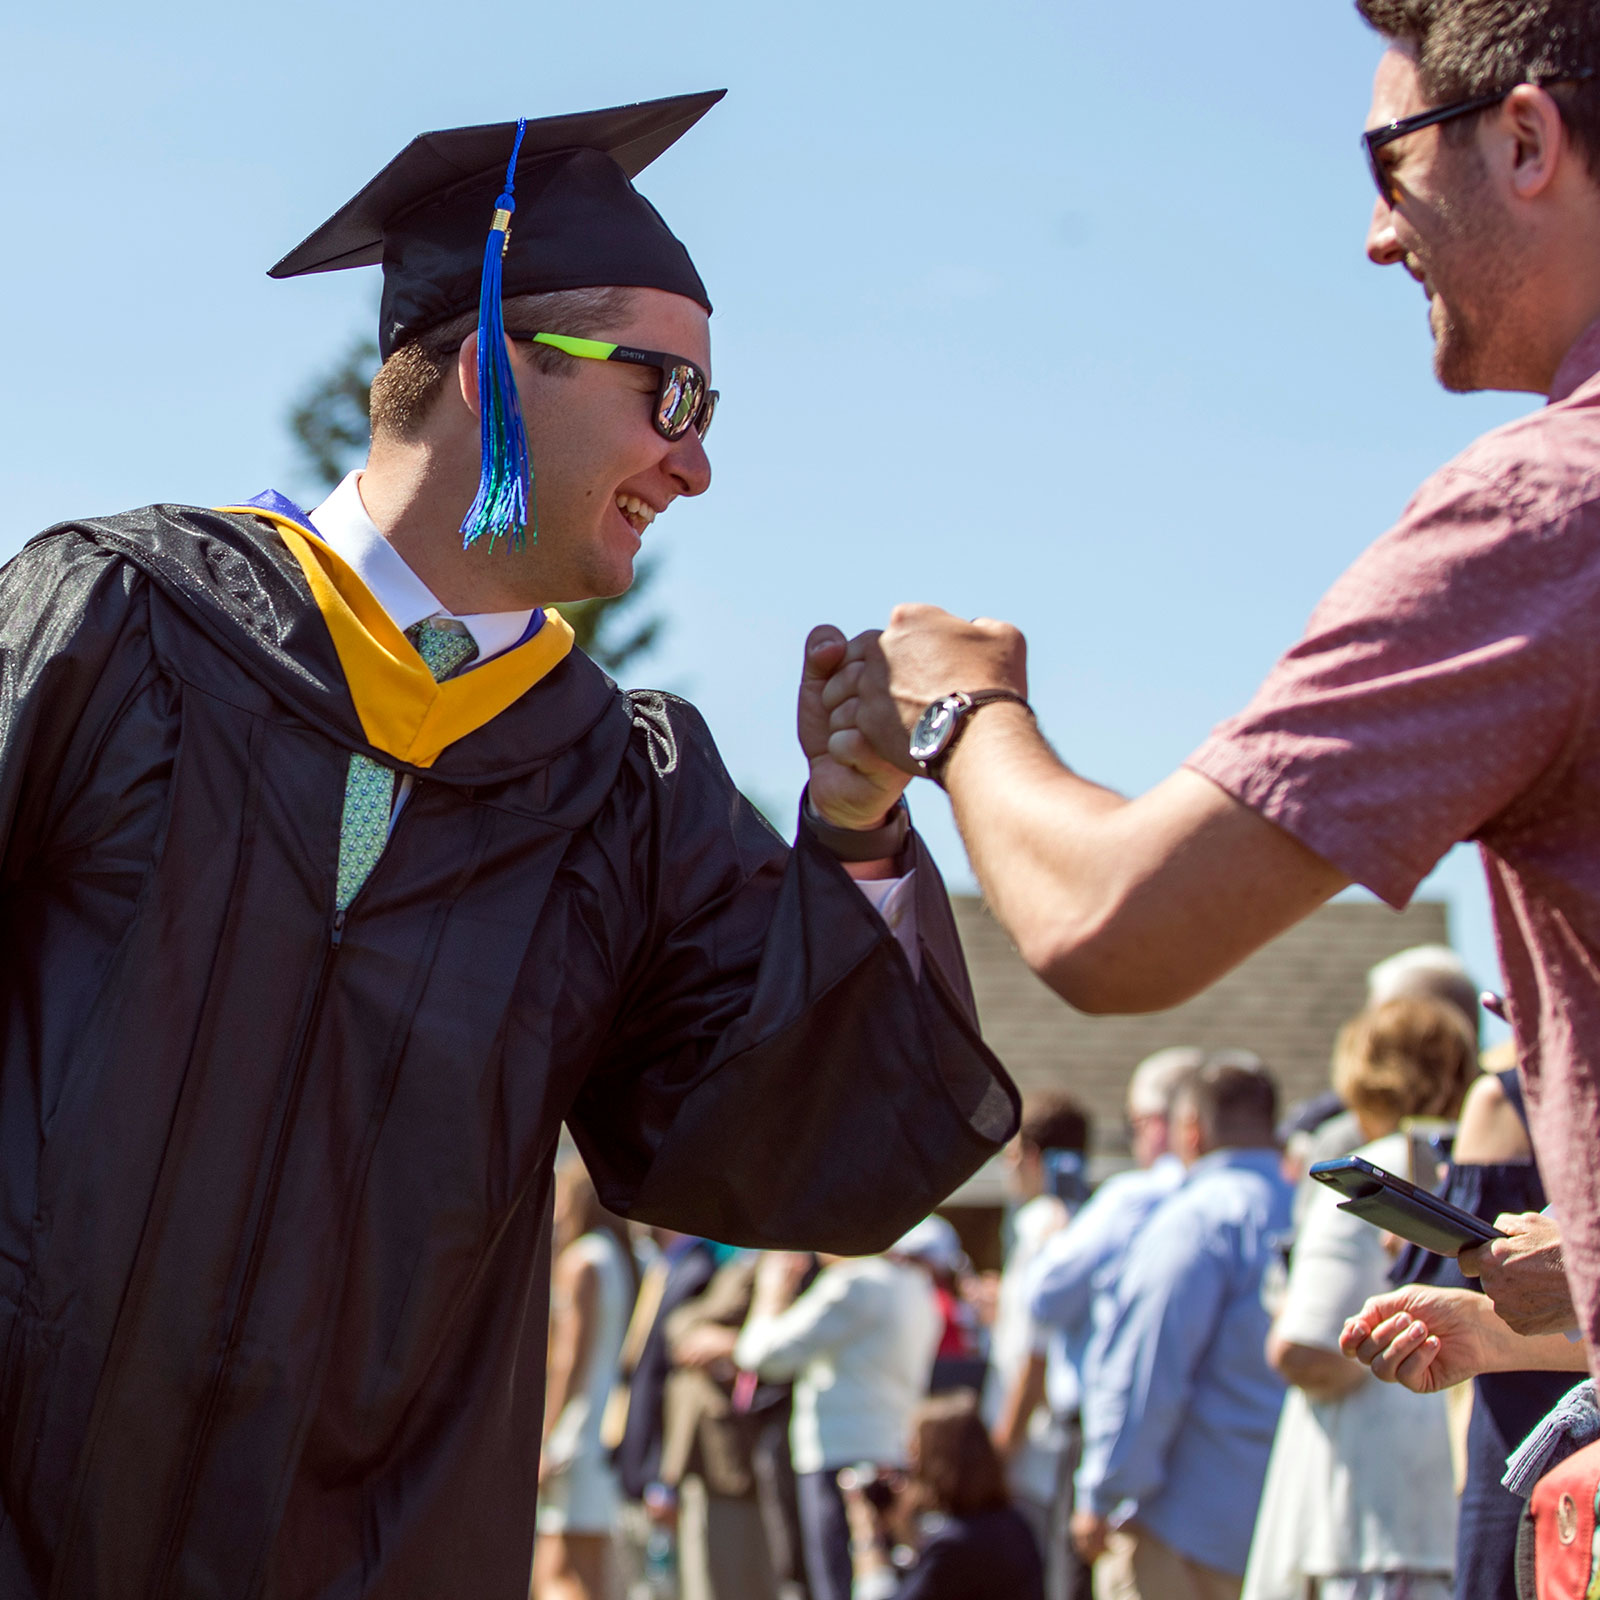 Graduate giving a fist bump to family member